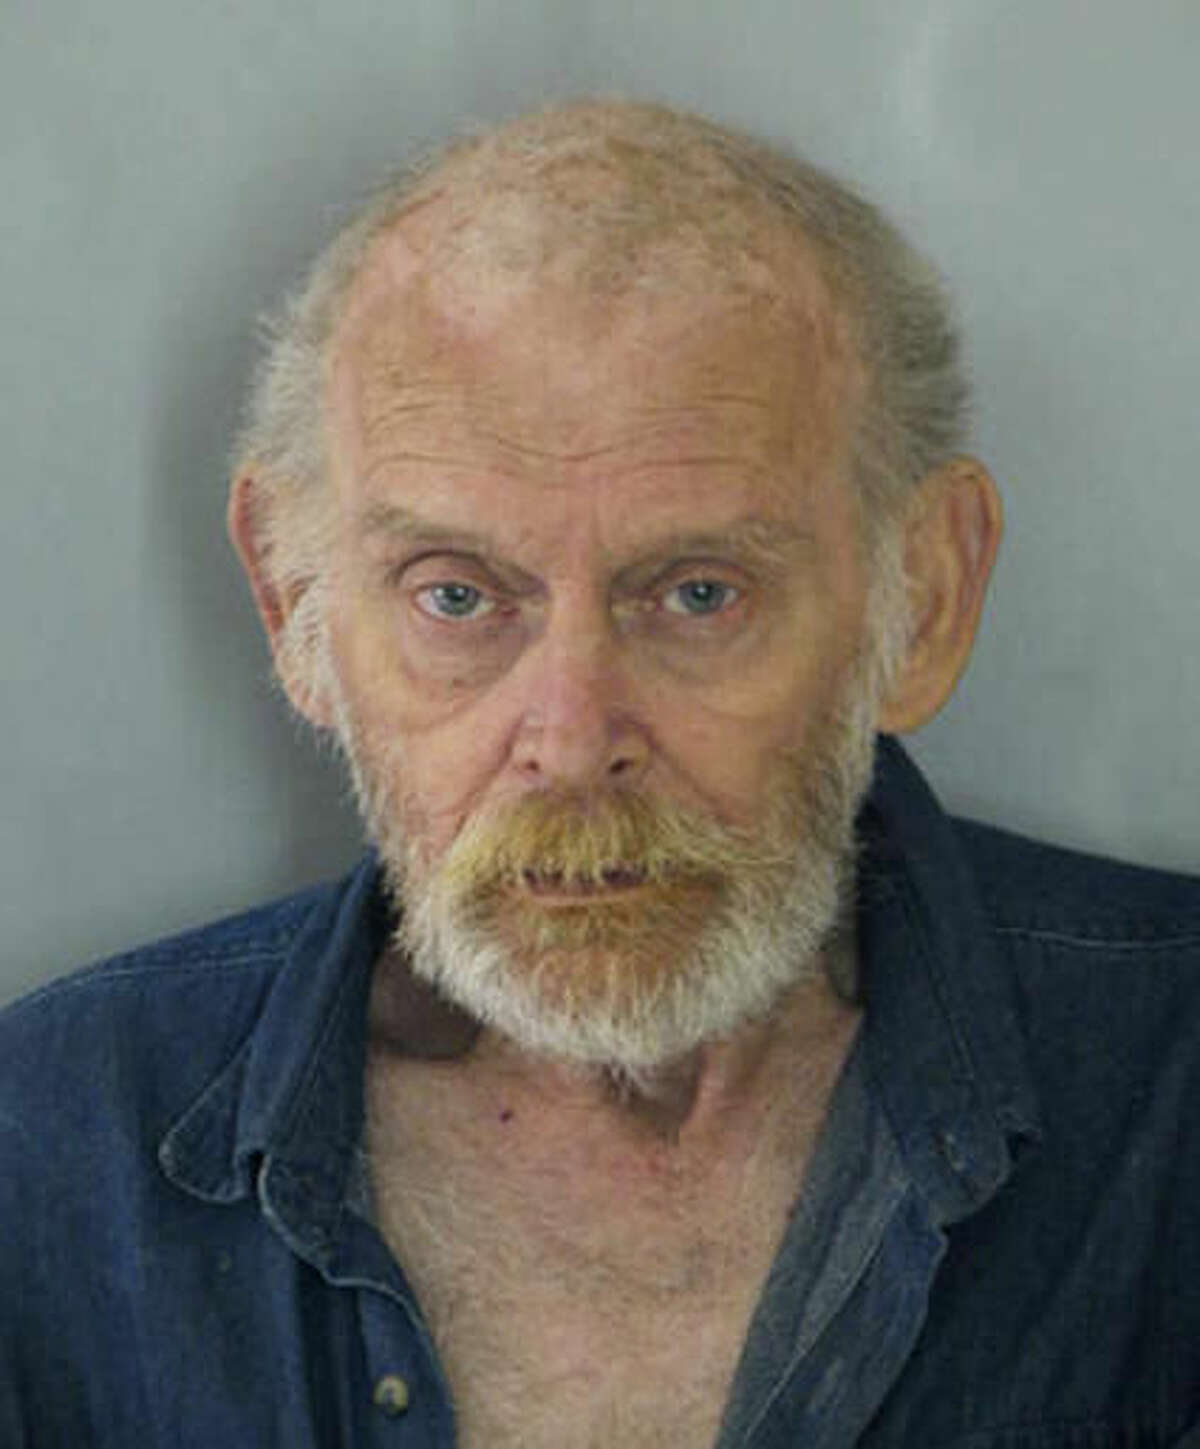 FILE - This undated photo provided by the Georgetown Police Department shows James Leon Clay, of Georgetown, Del. Clay, who was charged in Arkansas with the 1967 shooting death of a North Little Rock man, pleaded guilty in Jackson County Circuit Court on Tuesday, Nov. 22, 2016, to second-degree murder in the case. He was sentenced to 20 years in prison. (Georgetown Police Department via AP, File)